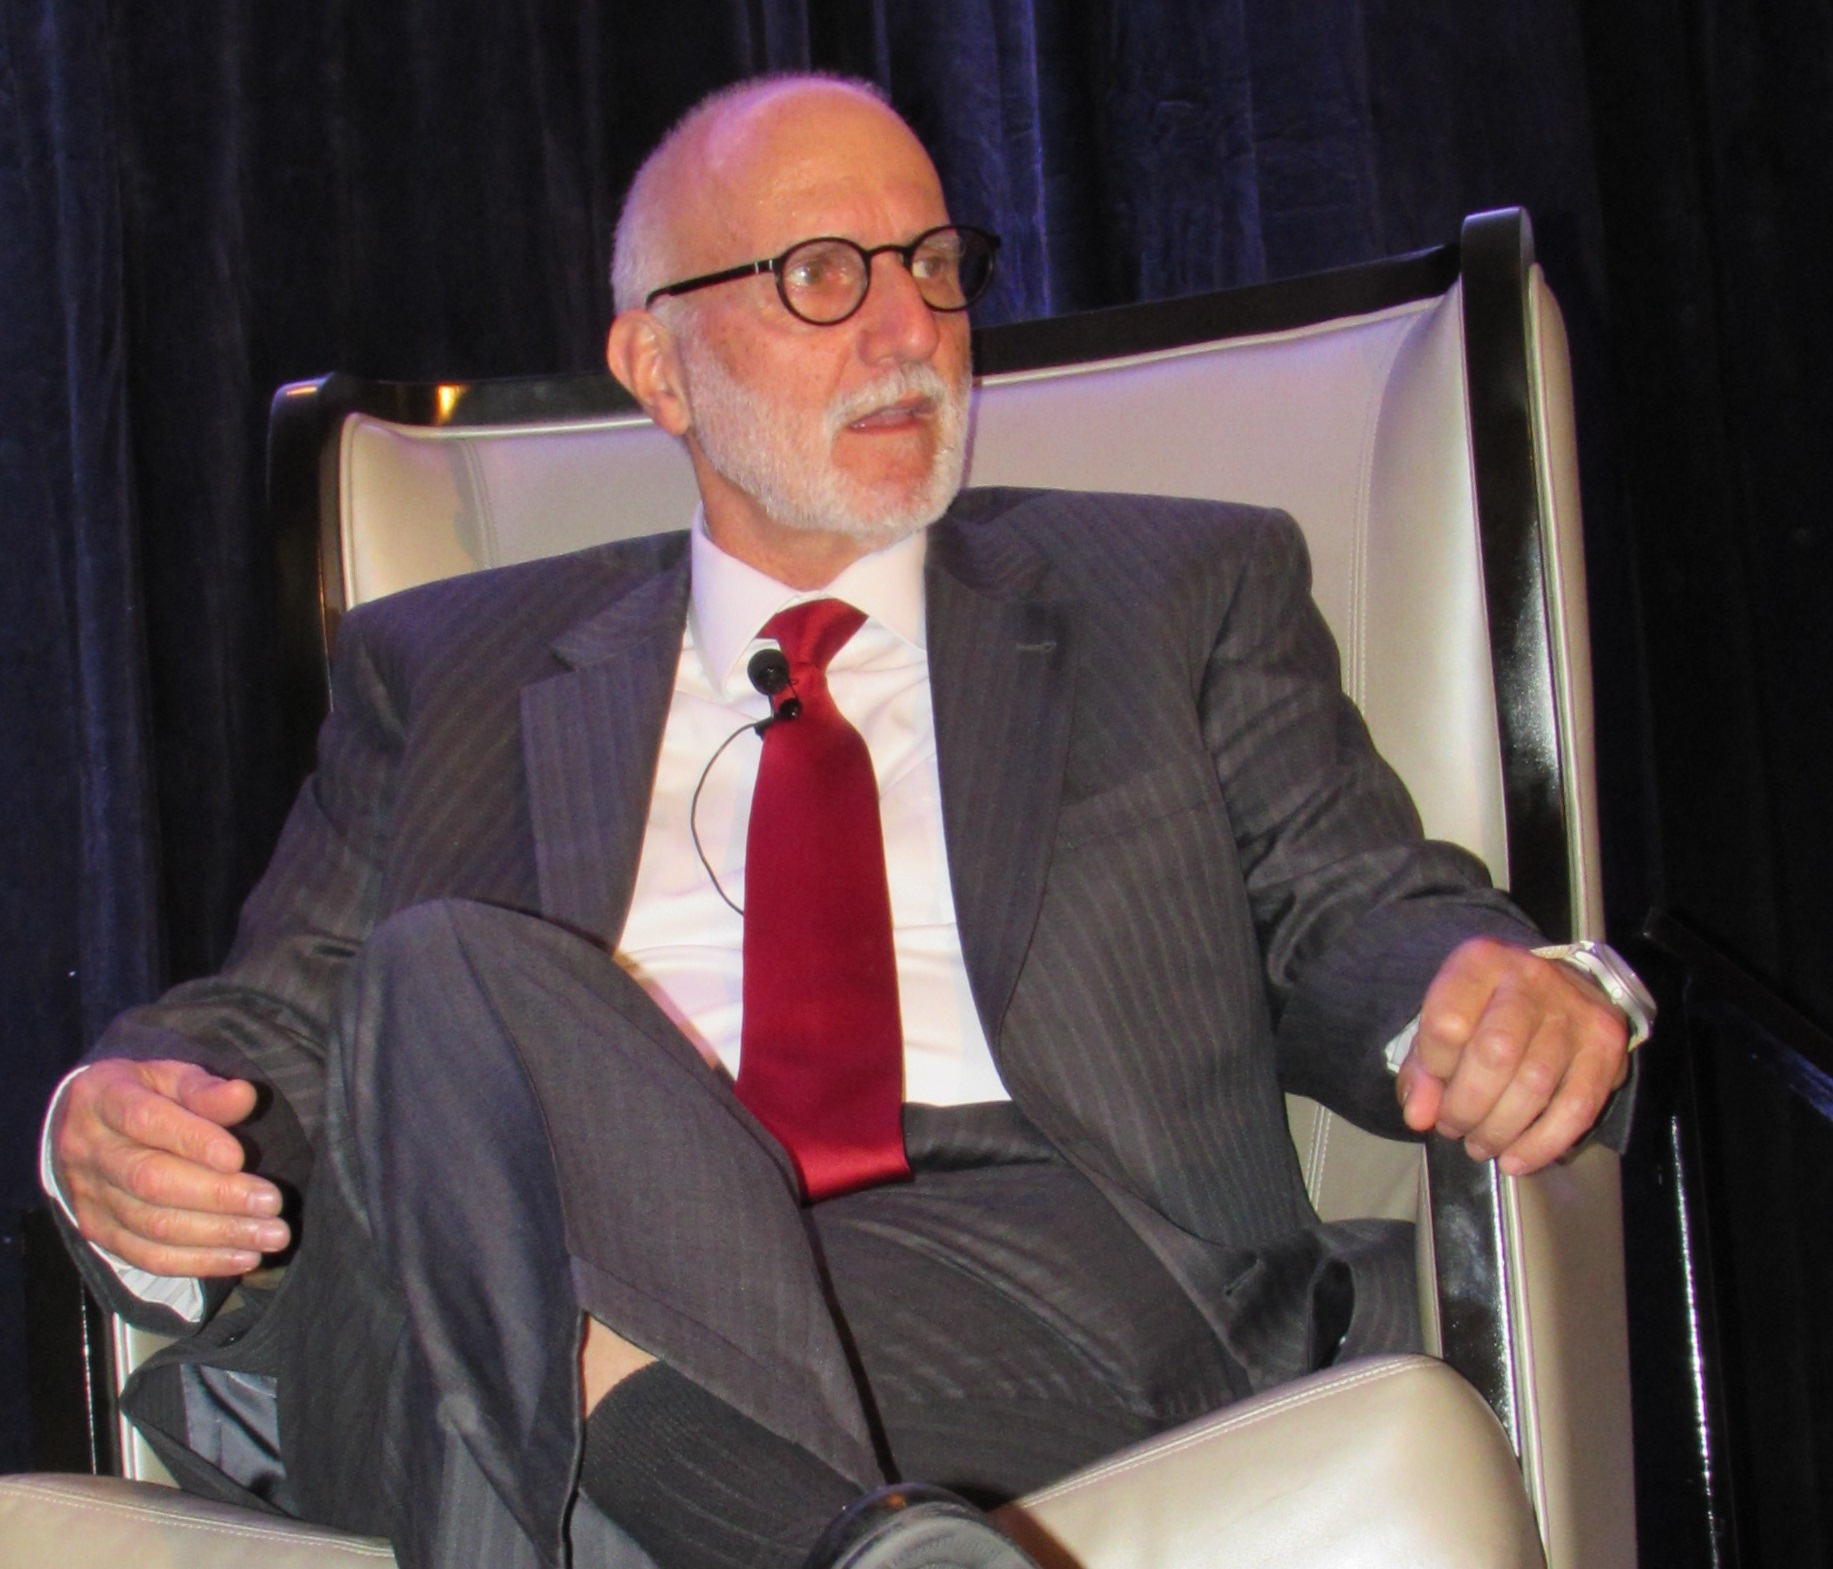 Click photo to download. Caption: Alan Gross speaks at the Jewish Federation of Greater Houston's Maimonides Society event on April 12. Credit: Jewish Federation of Greater Houston.